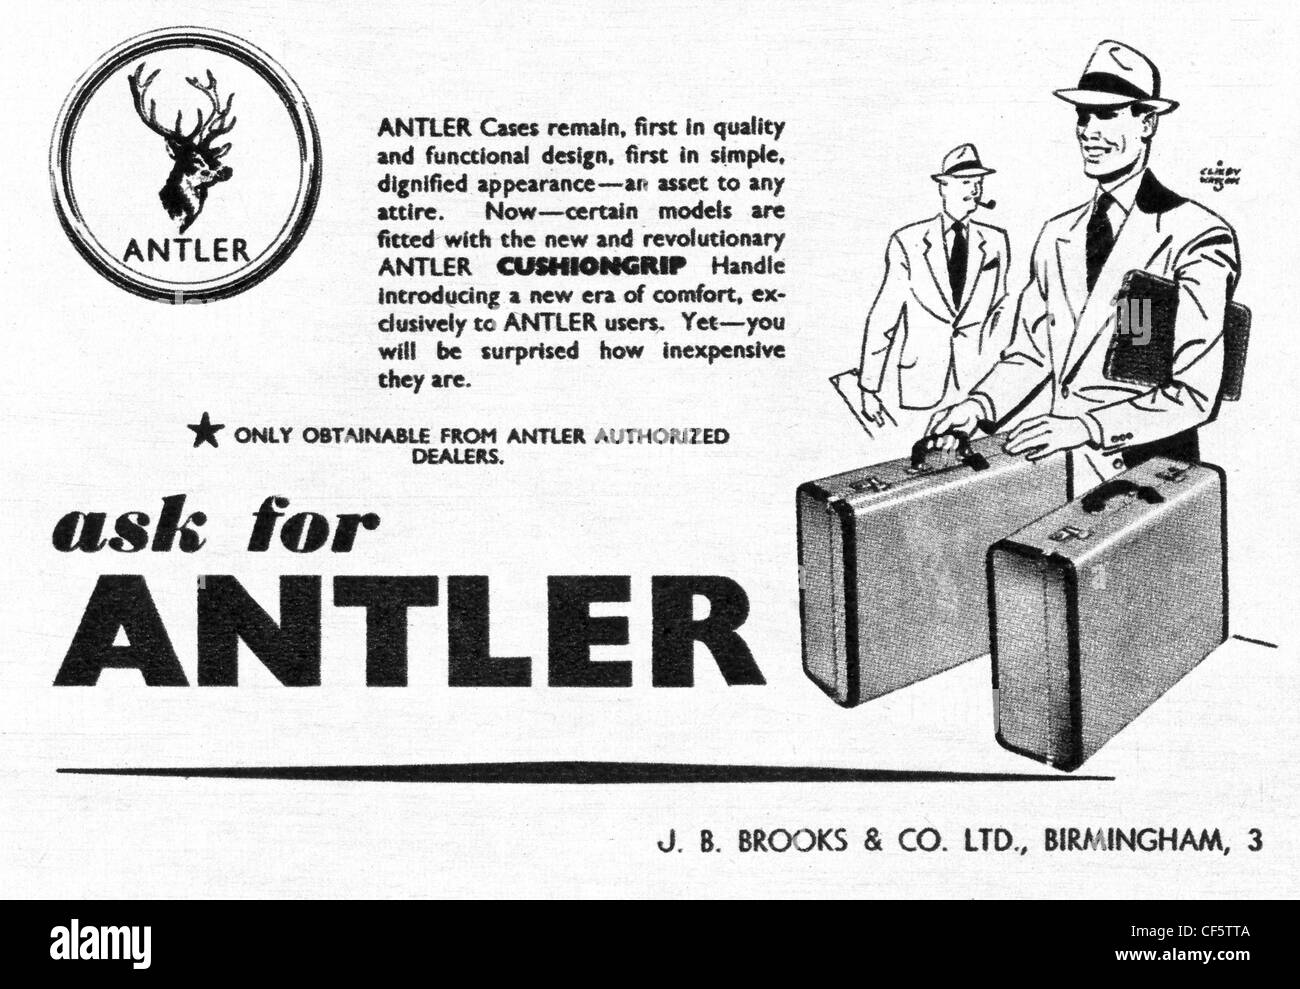 1953 advert for Antler suitcases, published in the UK - Stock Image